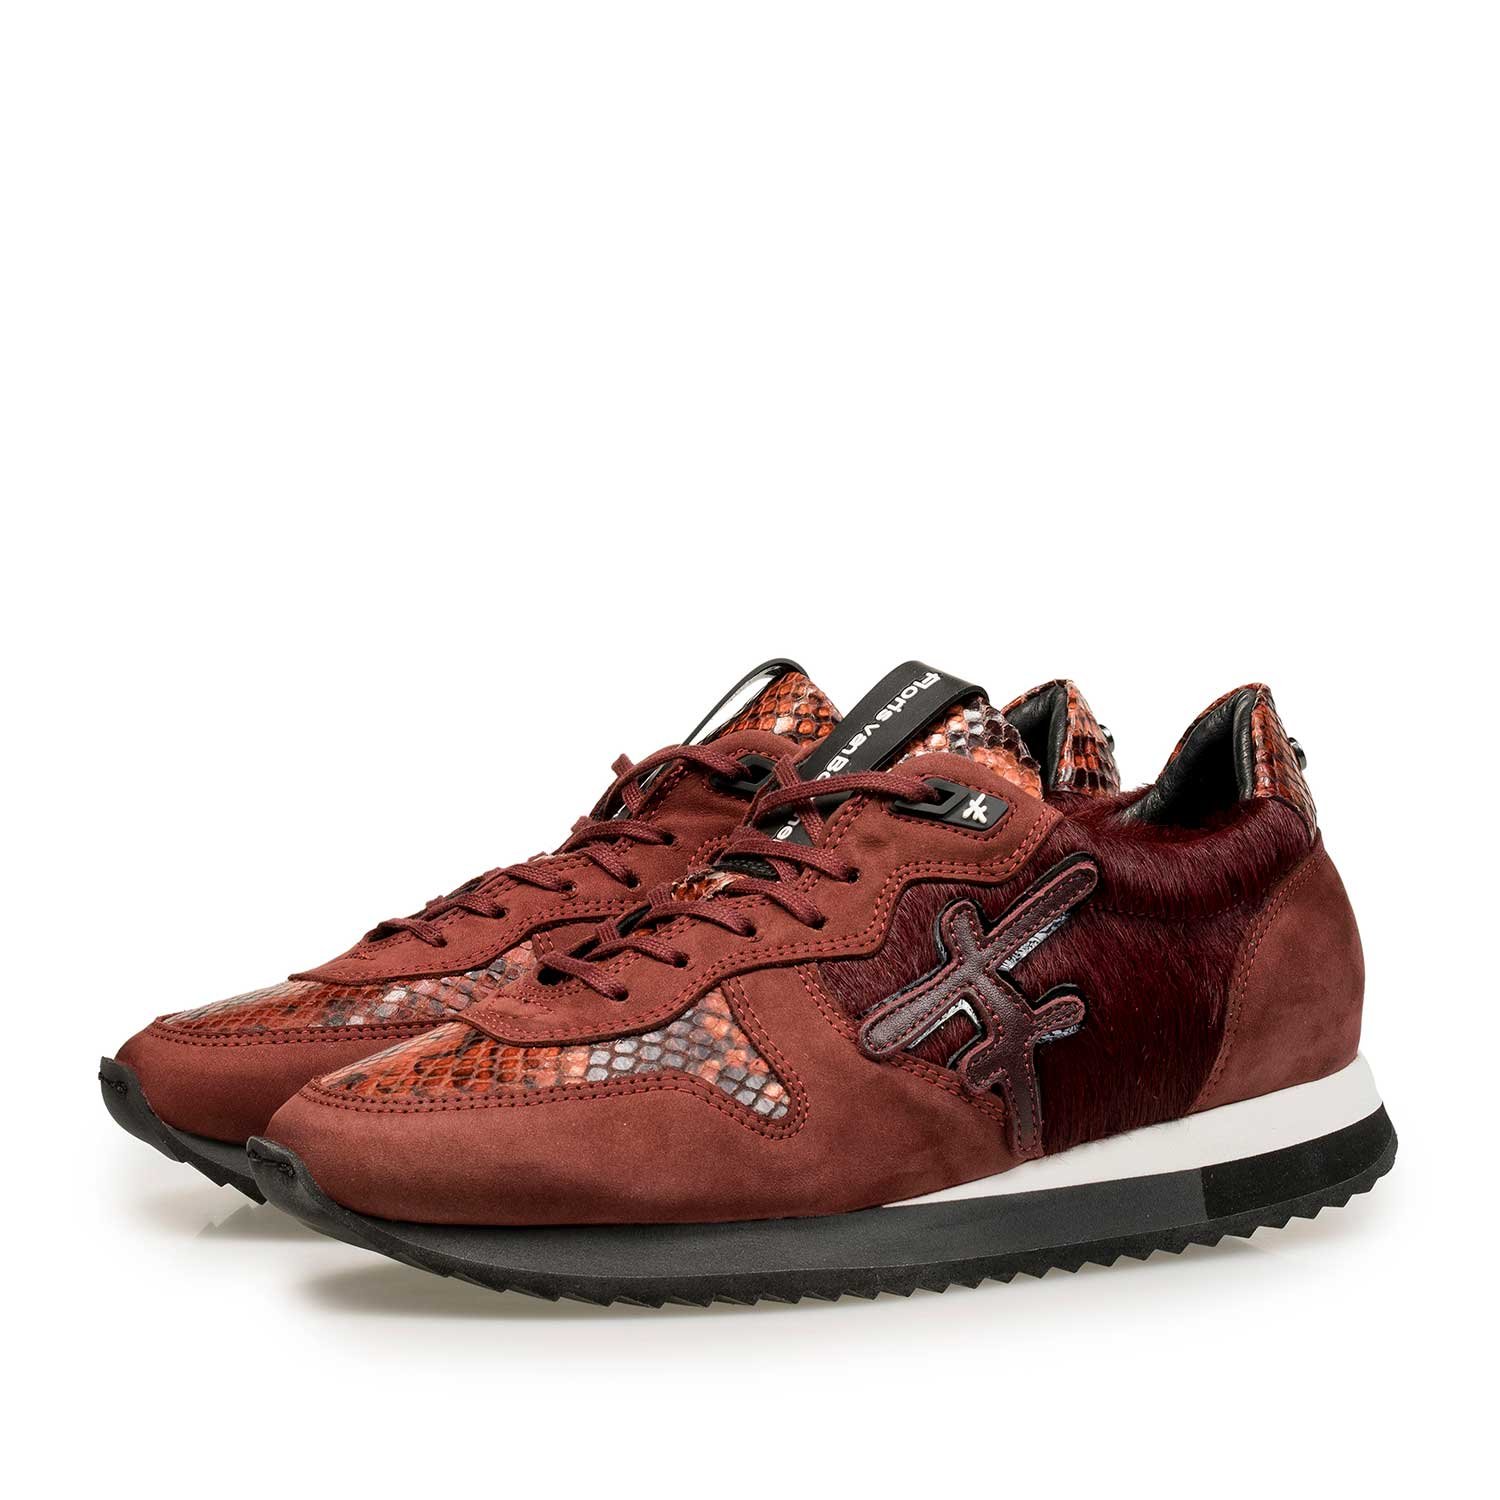 85256/00 - Bodeaux red leather sneaker with pony hair